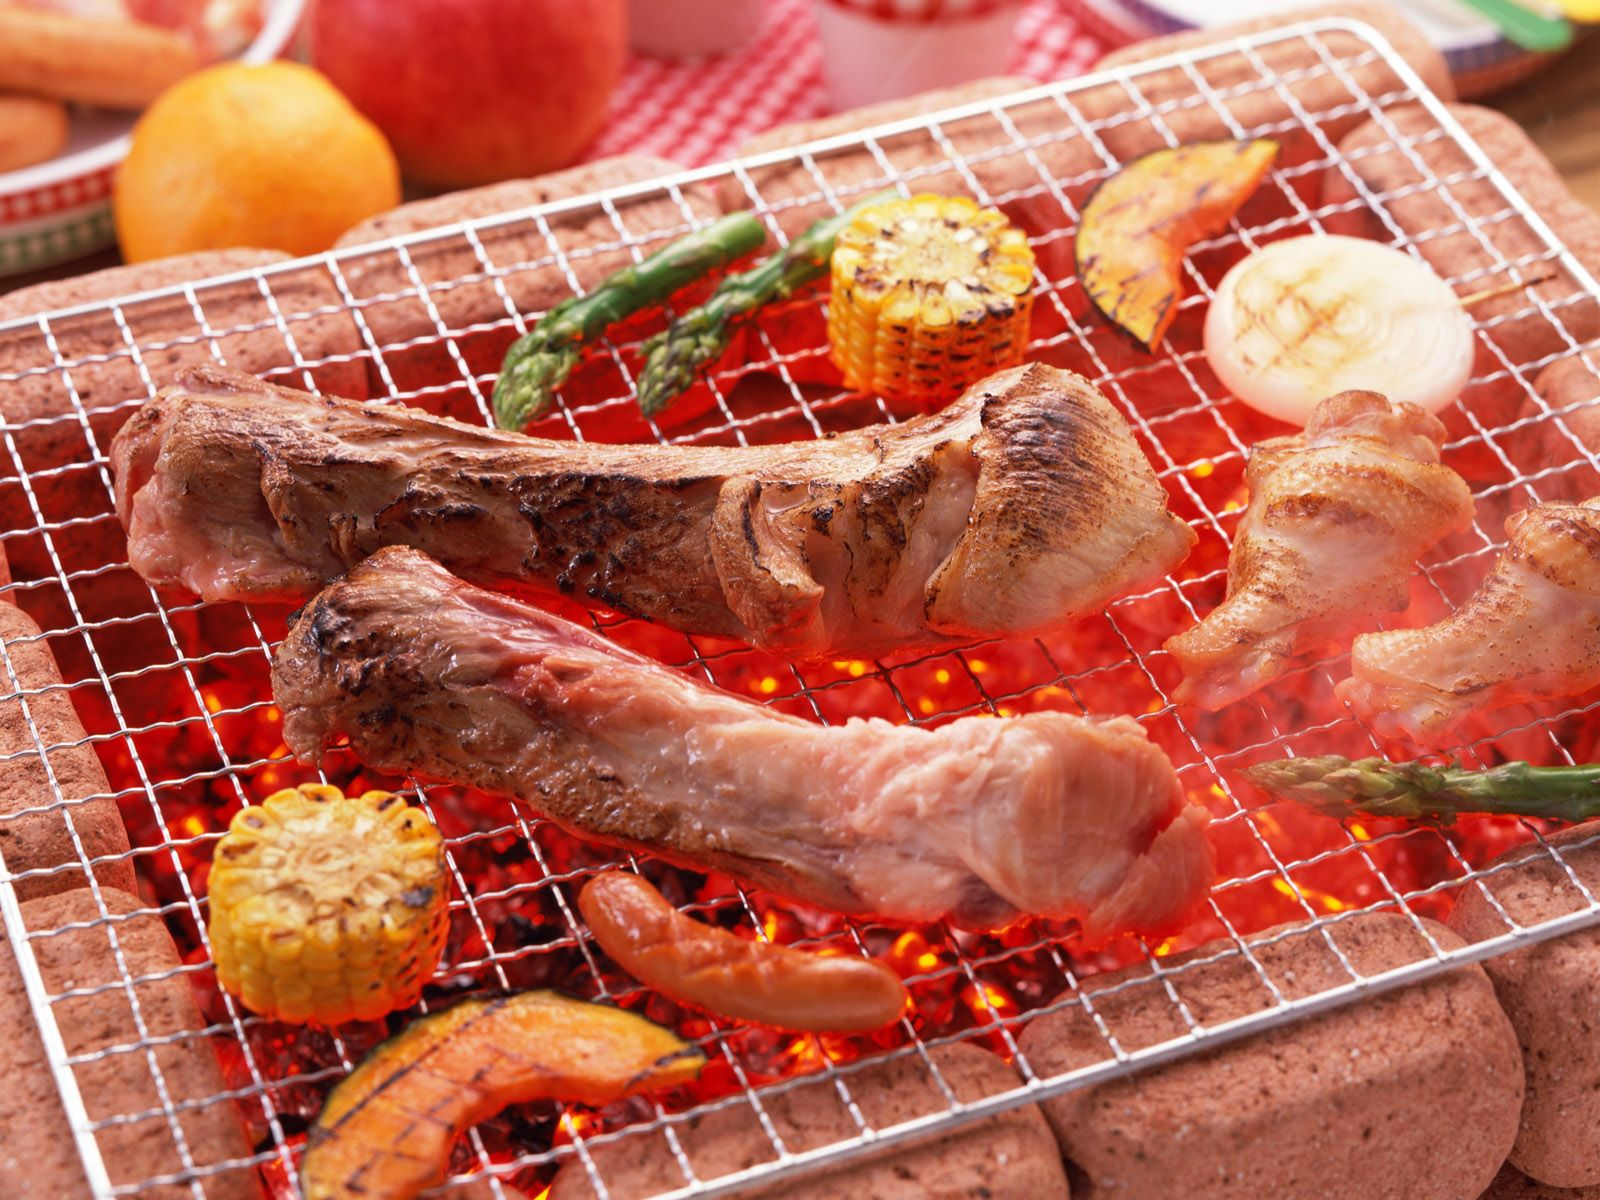 1600x1200 BBQ Ribs wallpapers and images - wallpapers, pictures, photos